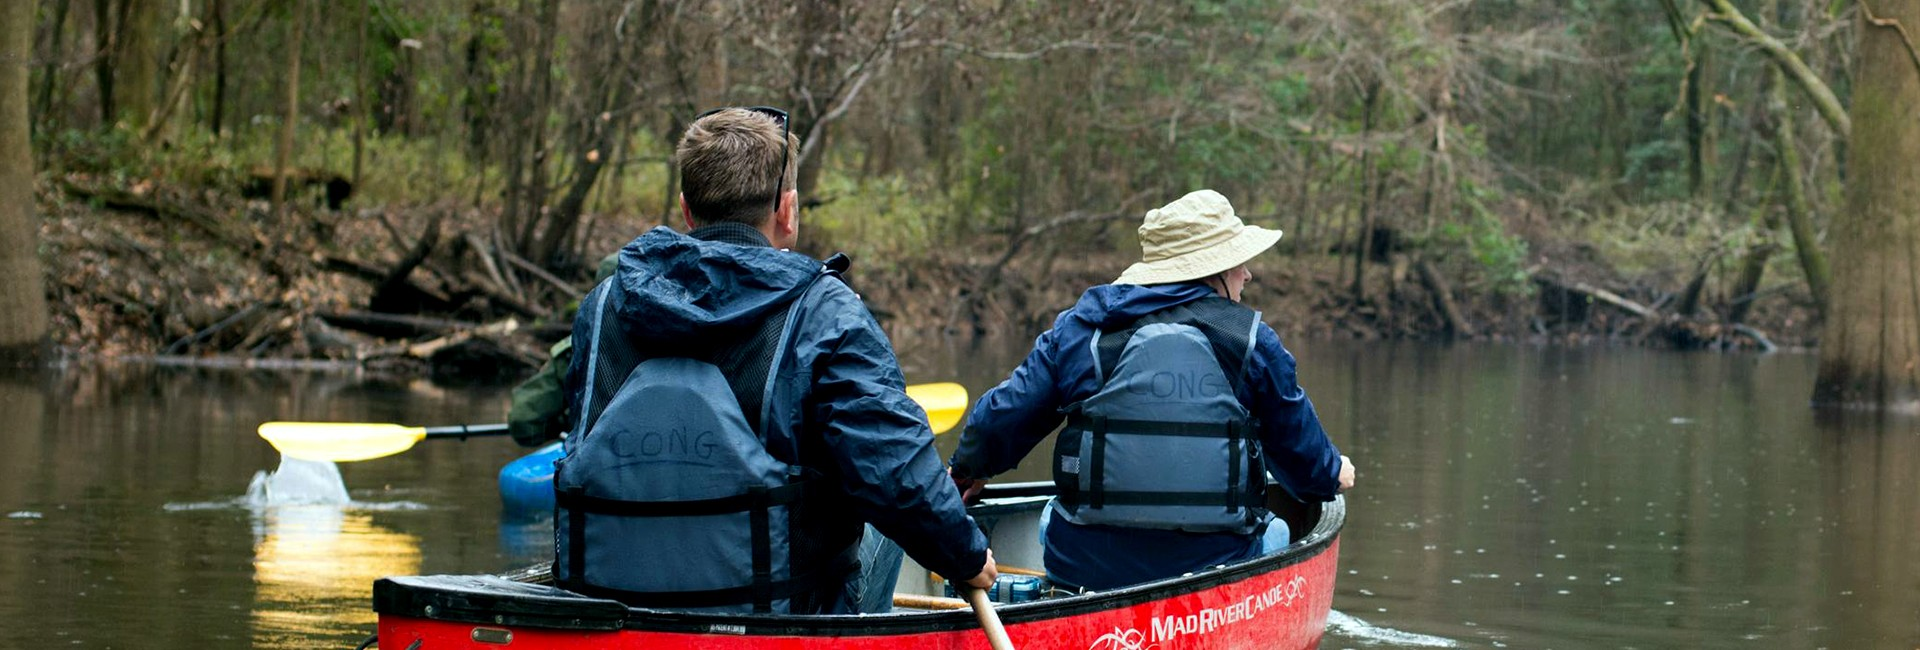 Kayaking in Congaree National Park in Hopkins, SC